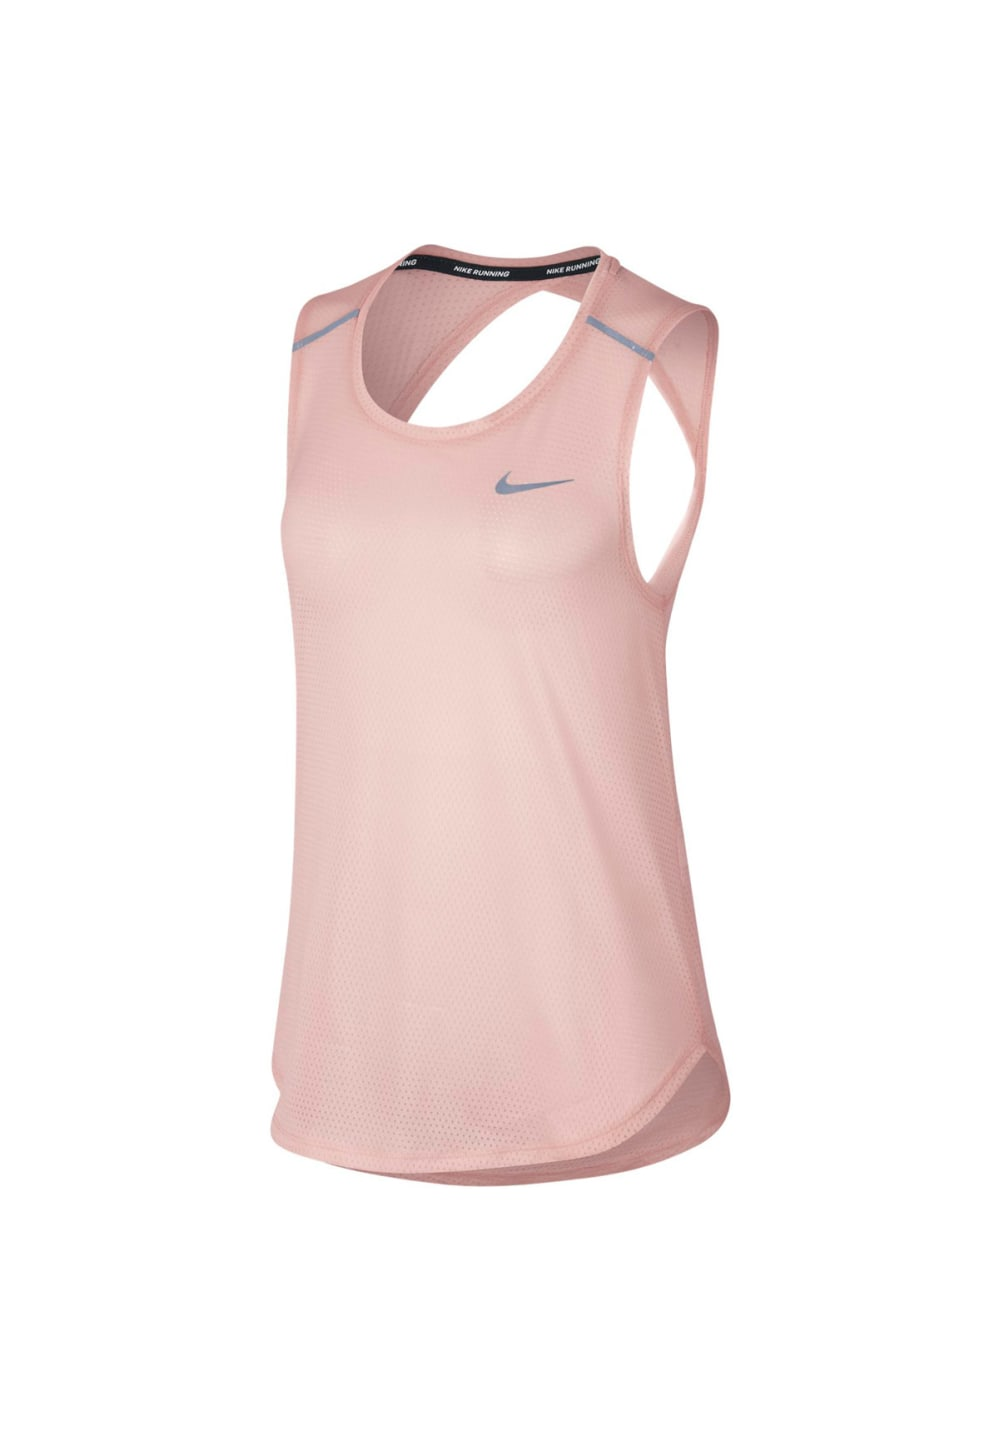 Nike Breathe Running Tank - Running tops for Women - Pink  820c7aa41